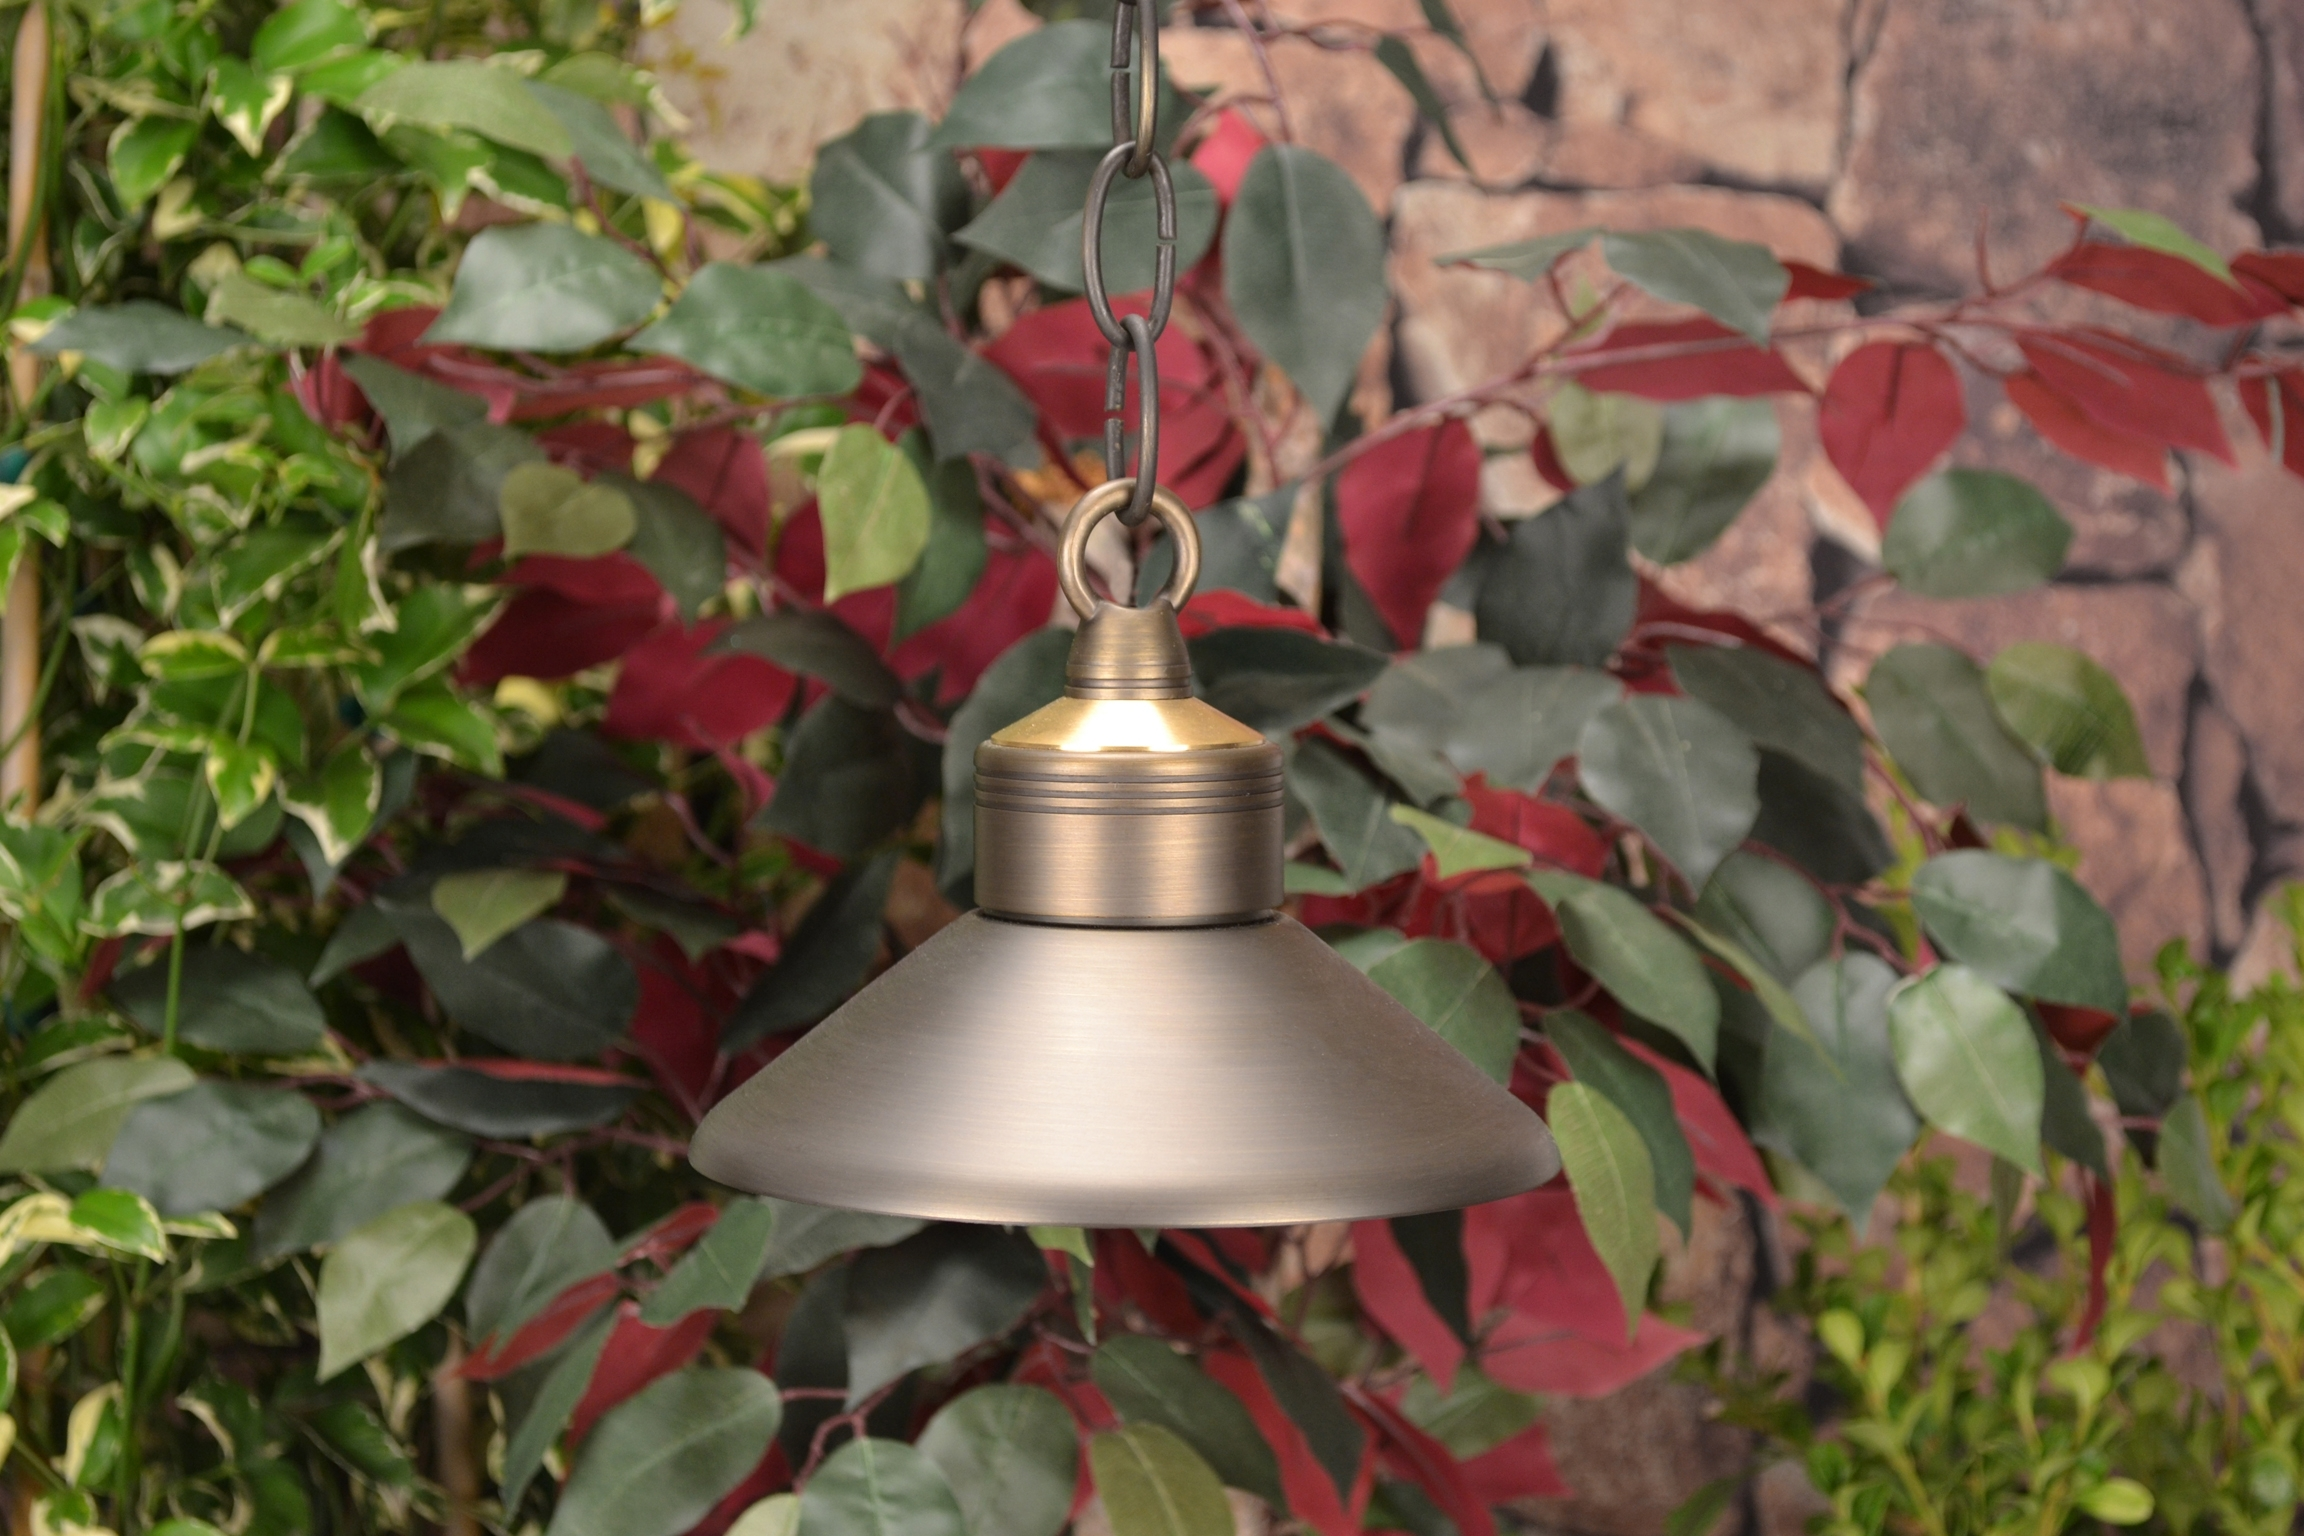 12 Volt Outdoor Hanging Lights Regarding Best And Newest Observerunique Lighting Systems – 12 Volt Brass Hanging Light (Gallery 1 of 20)